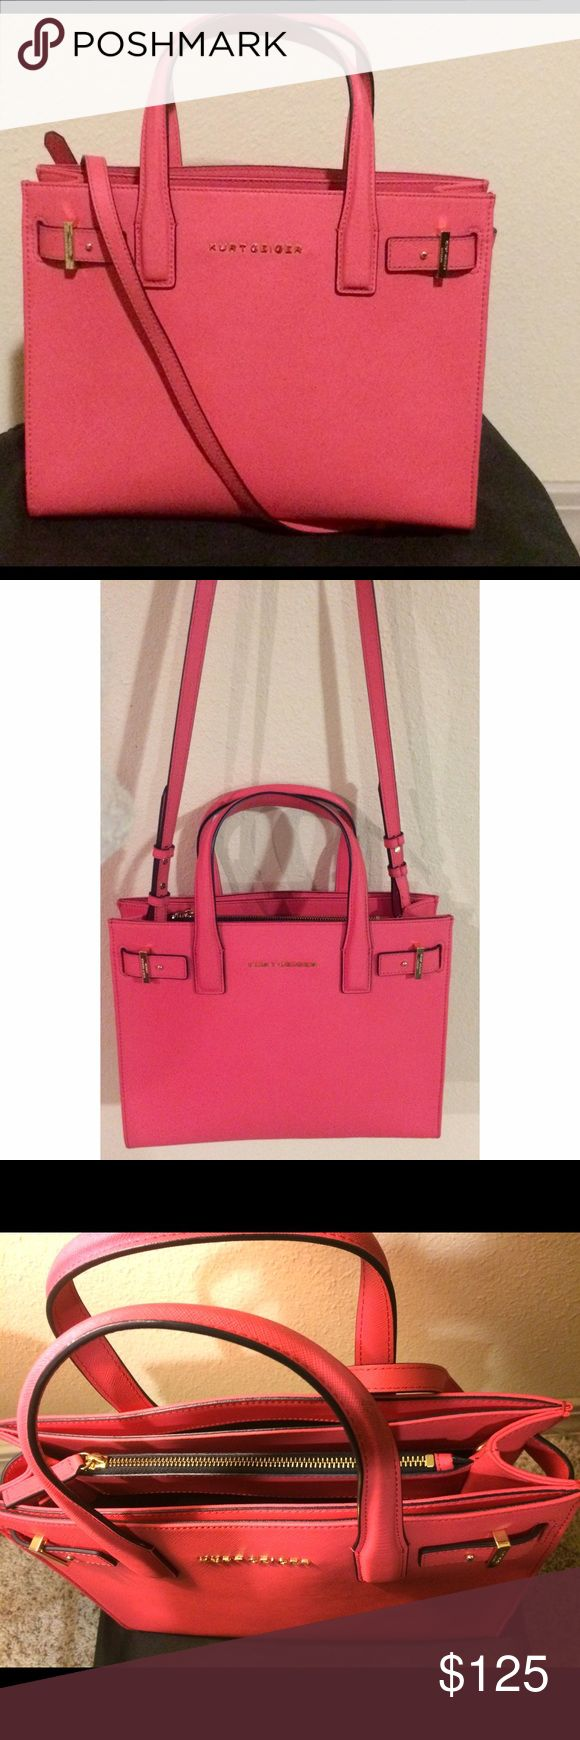 Kurt Geiger London Tote in saffiano leather Beautiful peach/salmon colored handbag with gold hardware.This Tote is made with durable saffiano leather. It comes with a shoulder strap and a nylon dust cover. Bags Totes